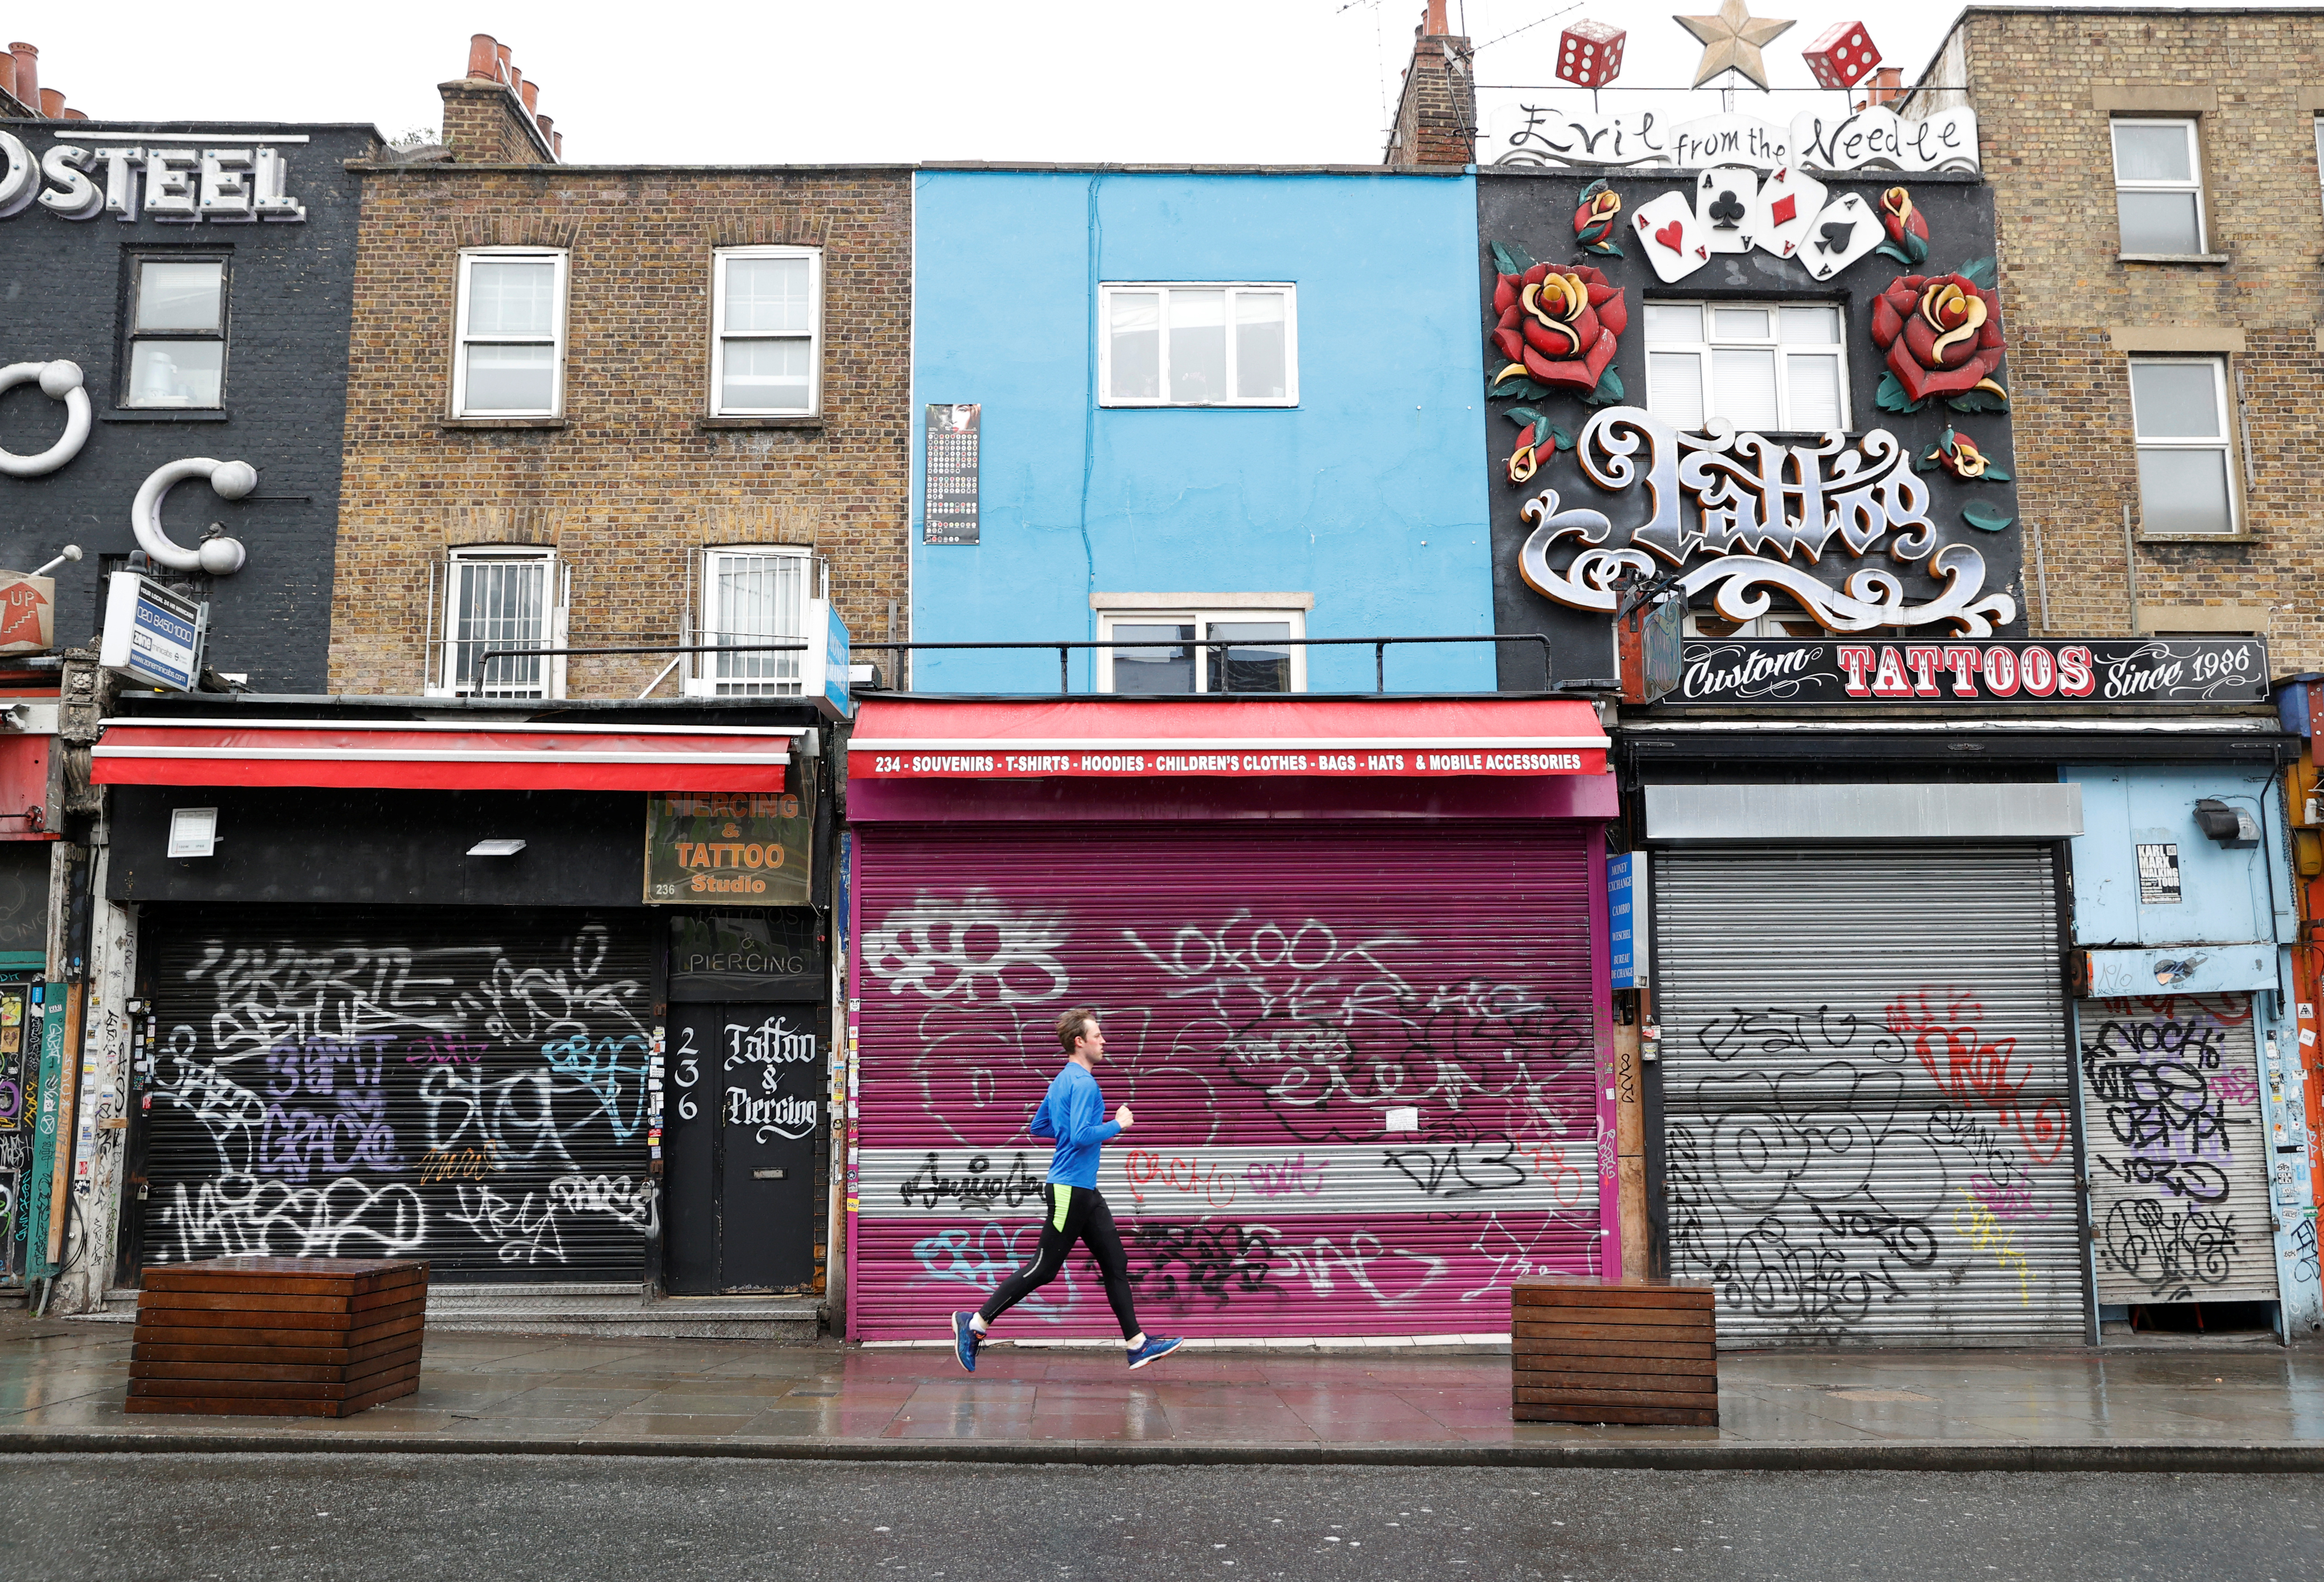 A man runs past closed shops in Camden, as the spread of the coronavirus disease (COVID-19) continues, London, Britain, April 28, 2020